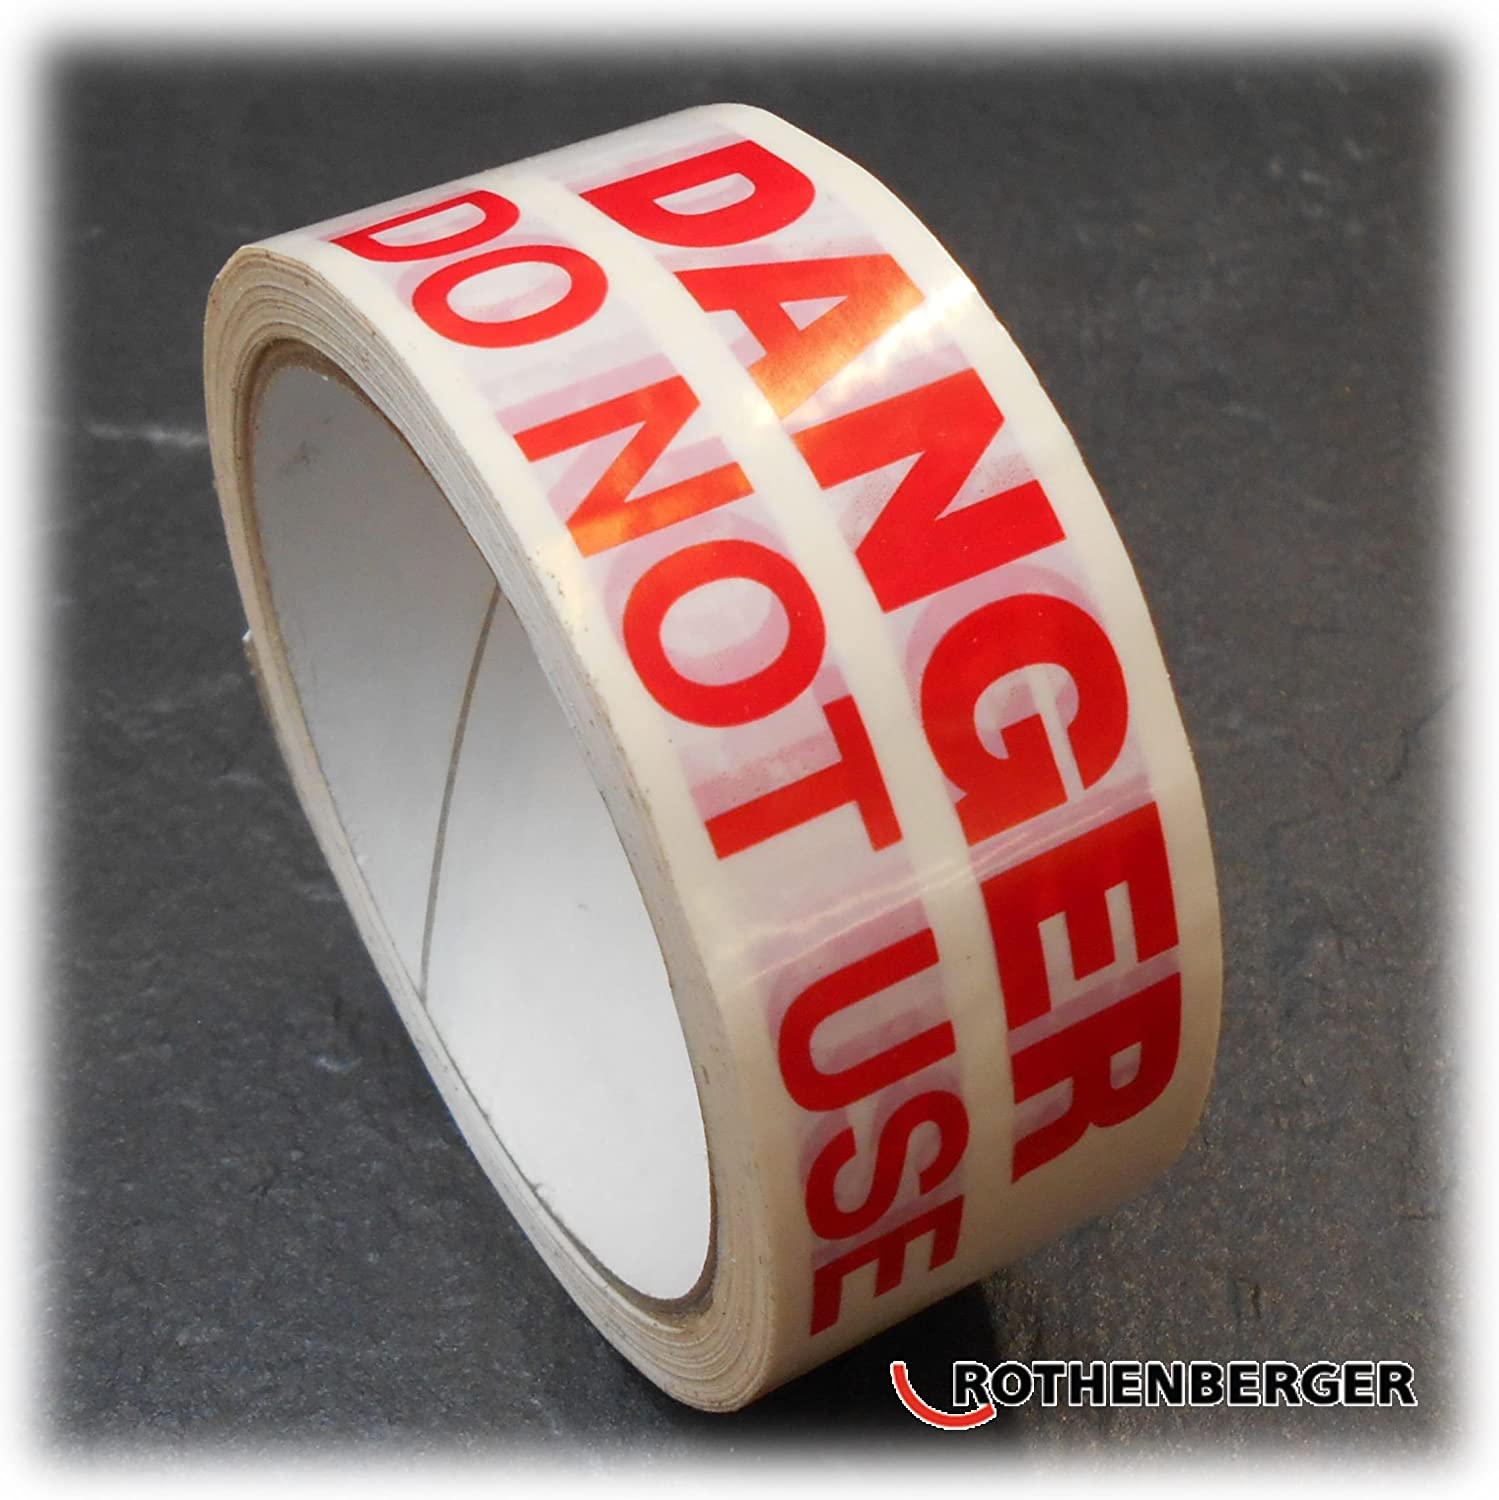 Rothenberger Danger Do Not Use Appliance Safety Identity Tape 6.7083